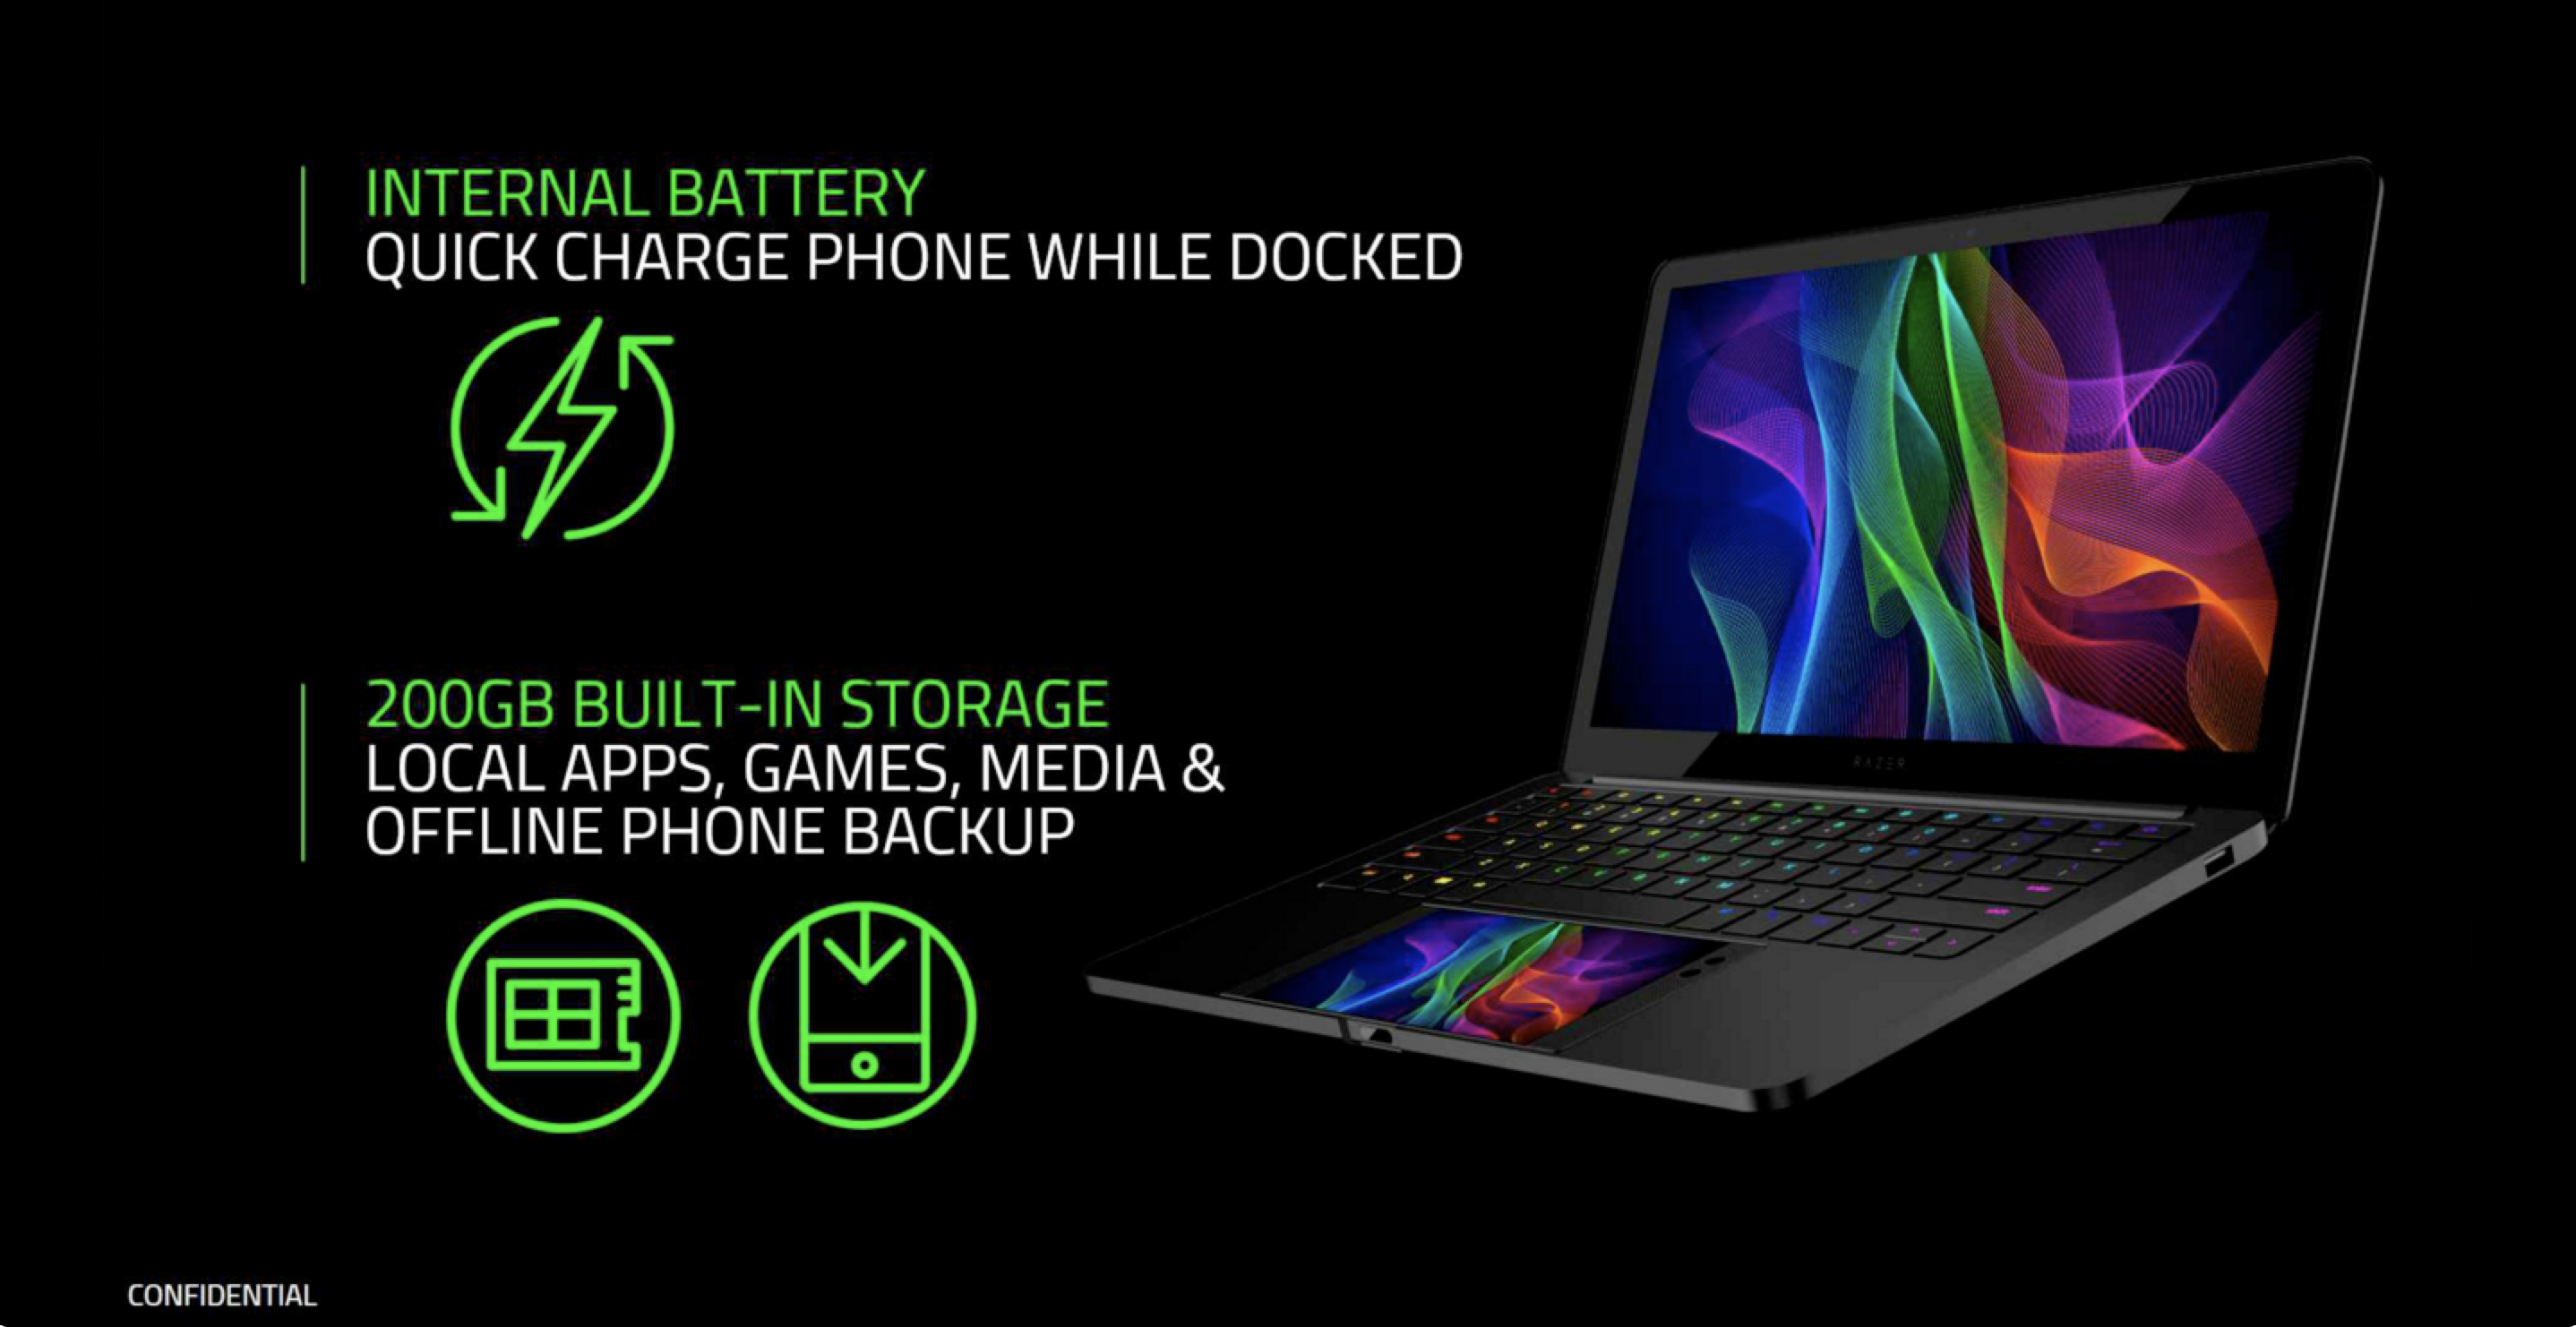 Razer's Project Linda concept docks its Android phone in the laptop